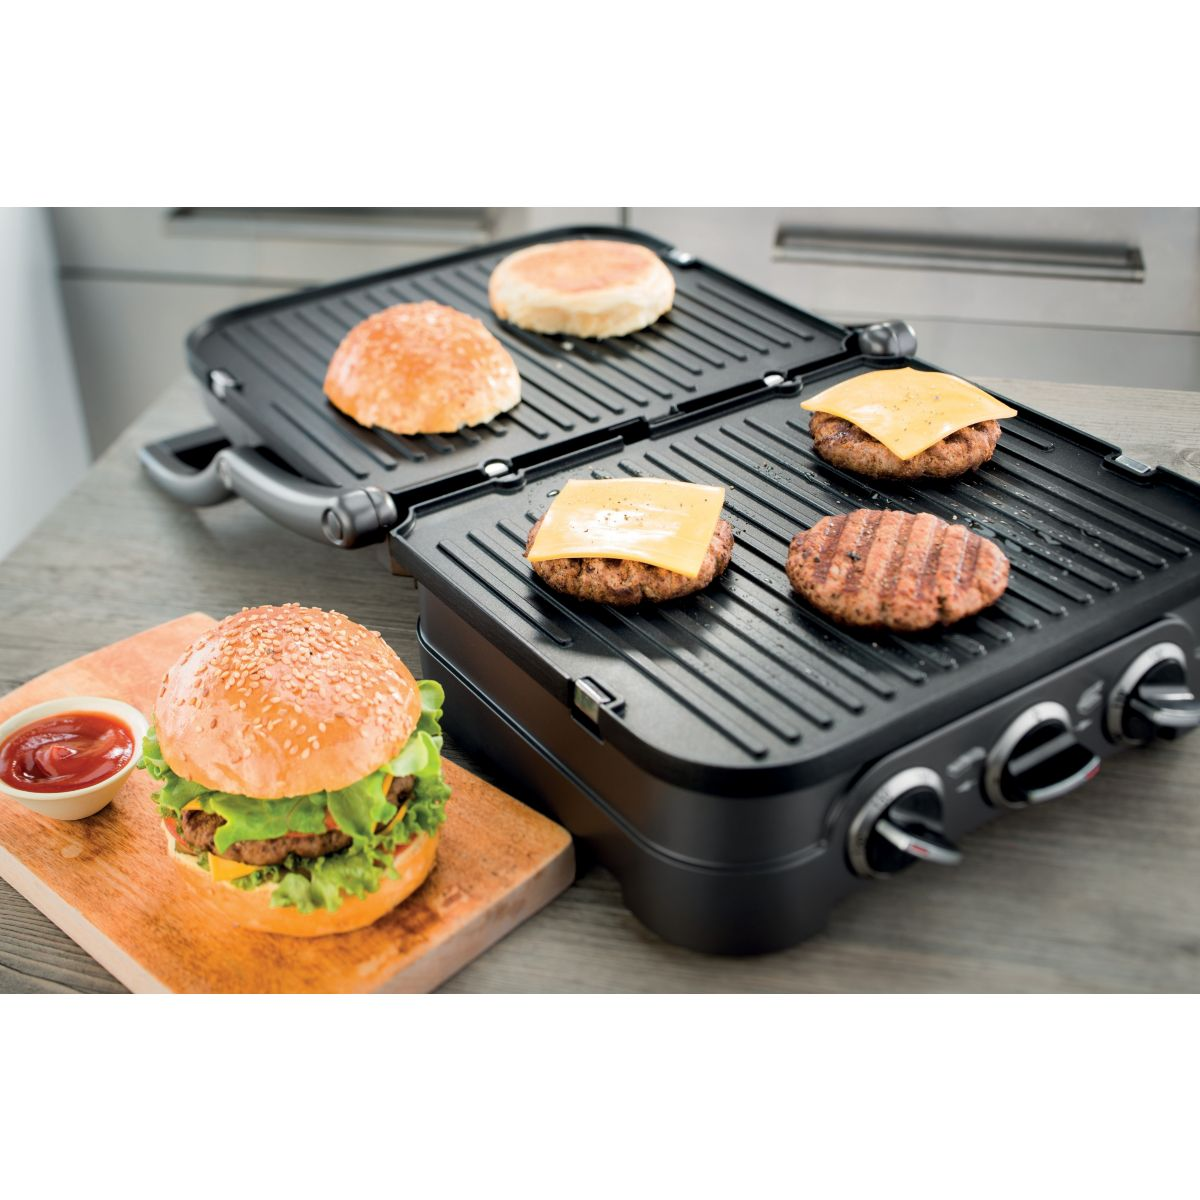 cuisinart po484e grill gaufrier croque monsieur avec. Black Bedroom Furniture Sets. Home Design Ideas